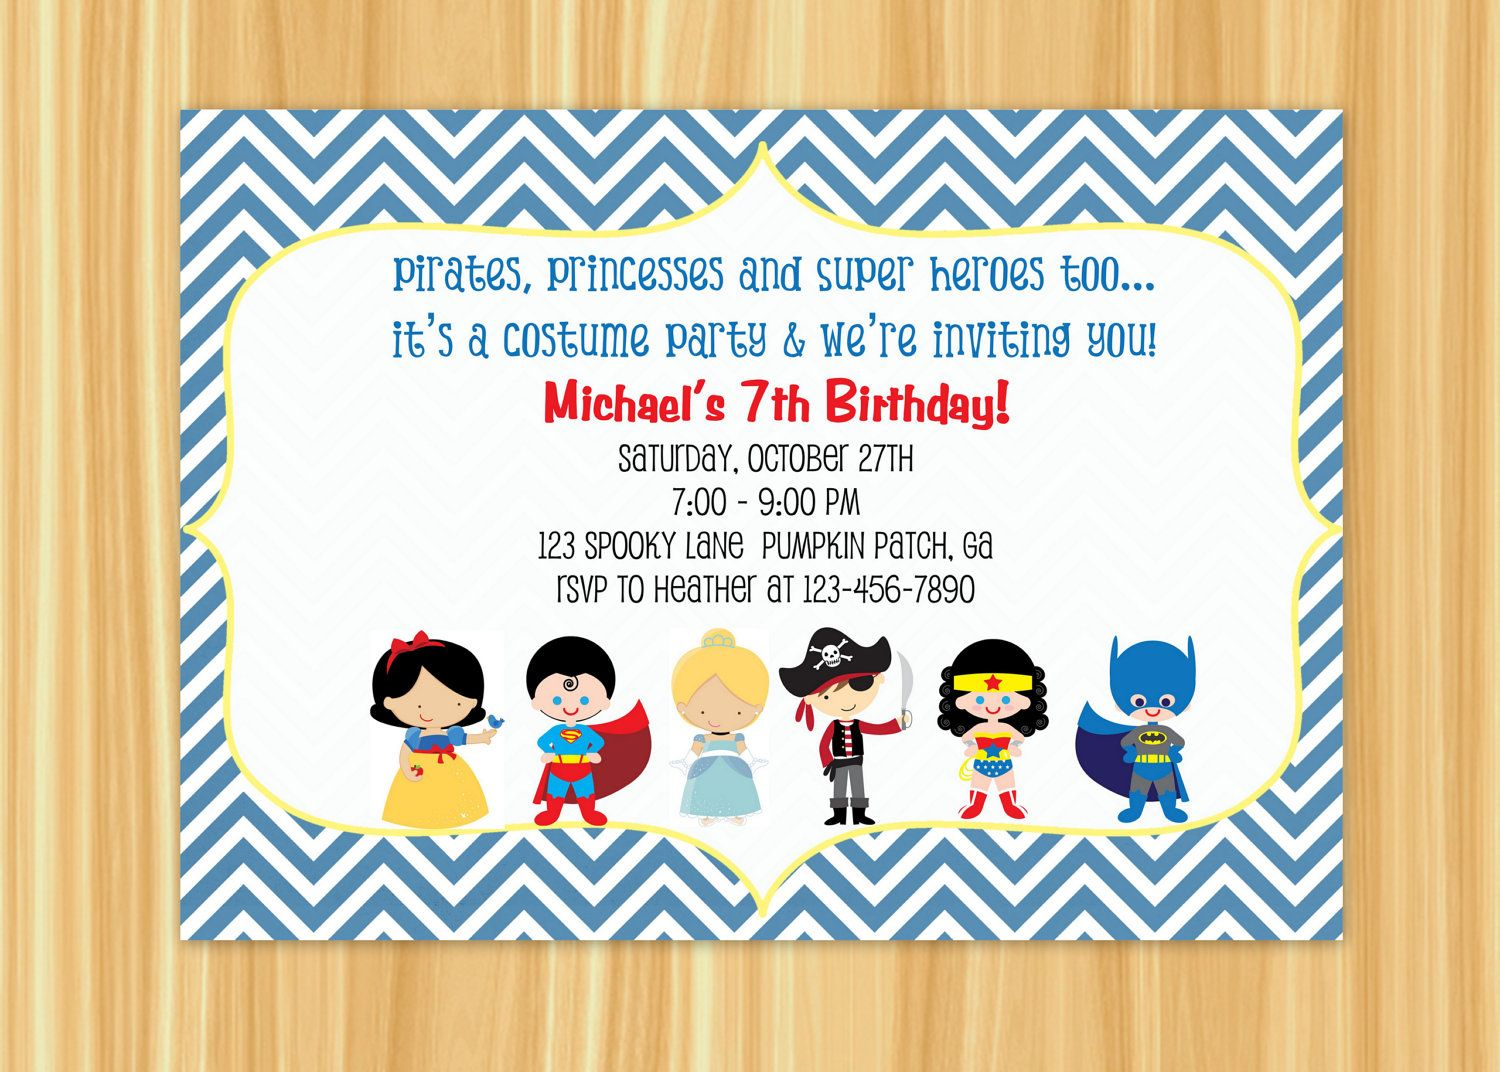 Custom Printable Kids Costume Party Birthday Invitation - Birthday party invitation ideas pinterest